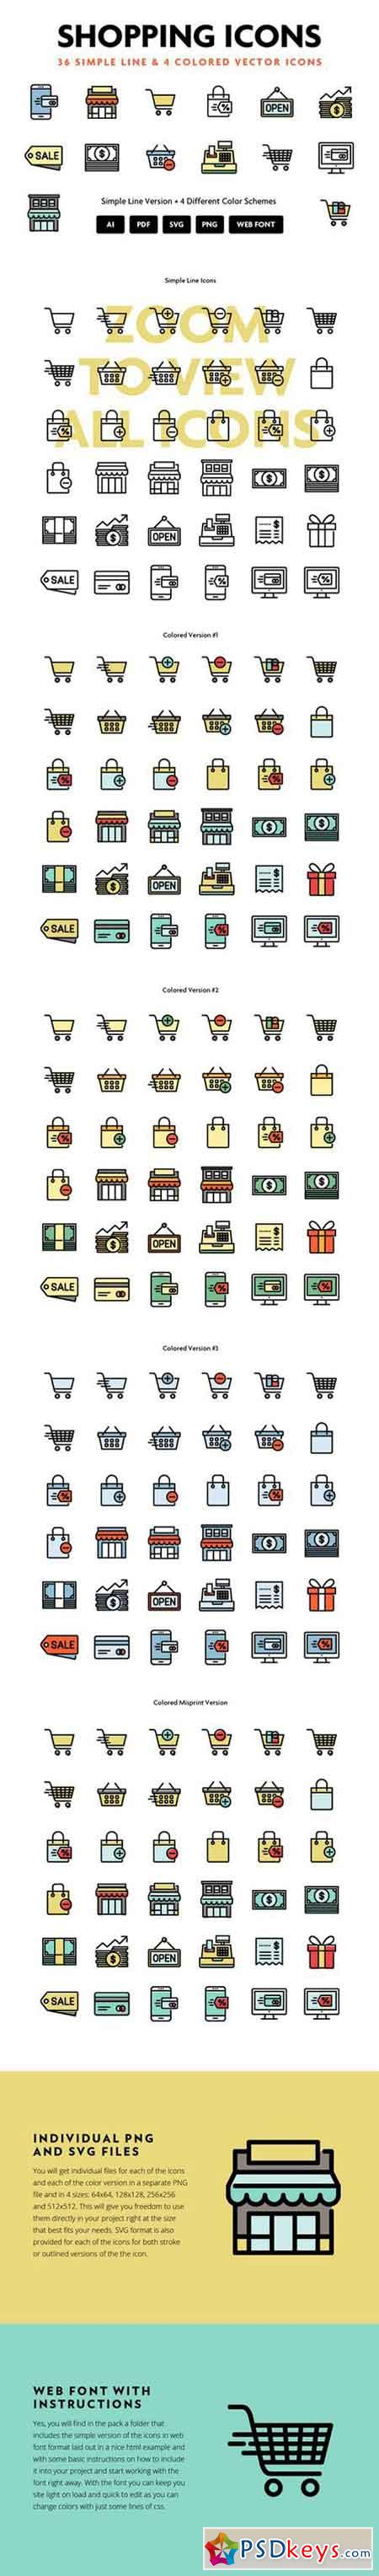 Shopping Line Icons 200389 » Free Download Photoshop Vector